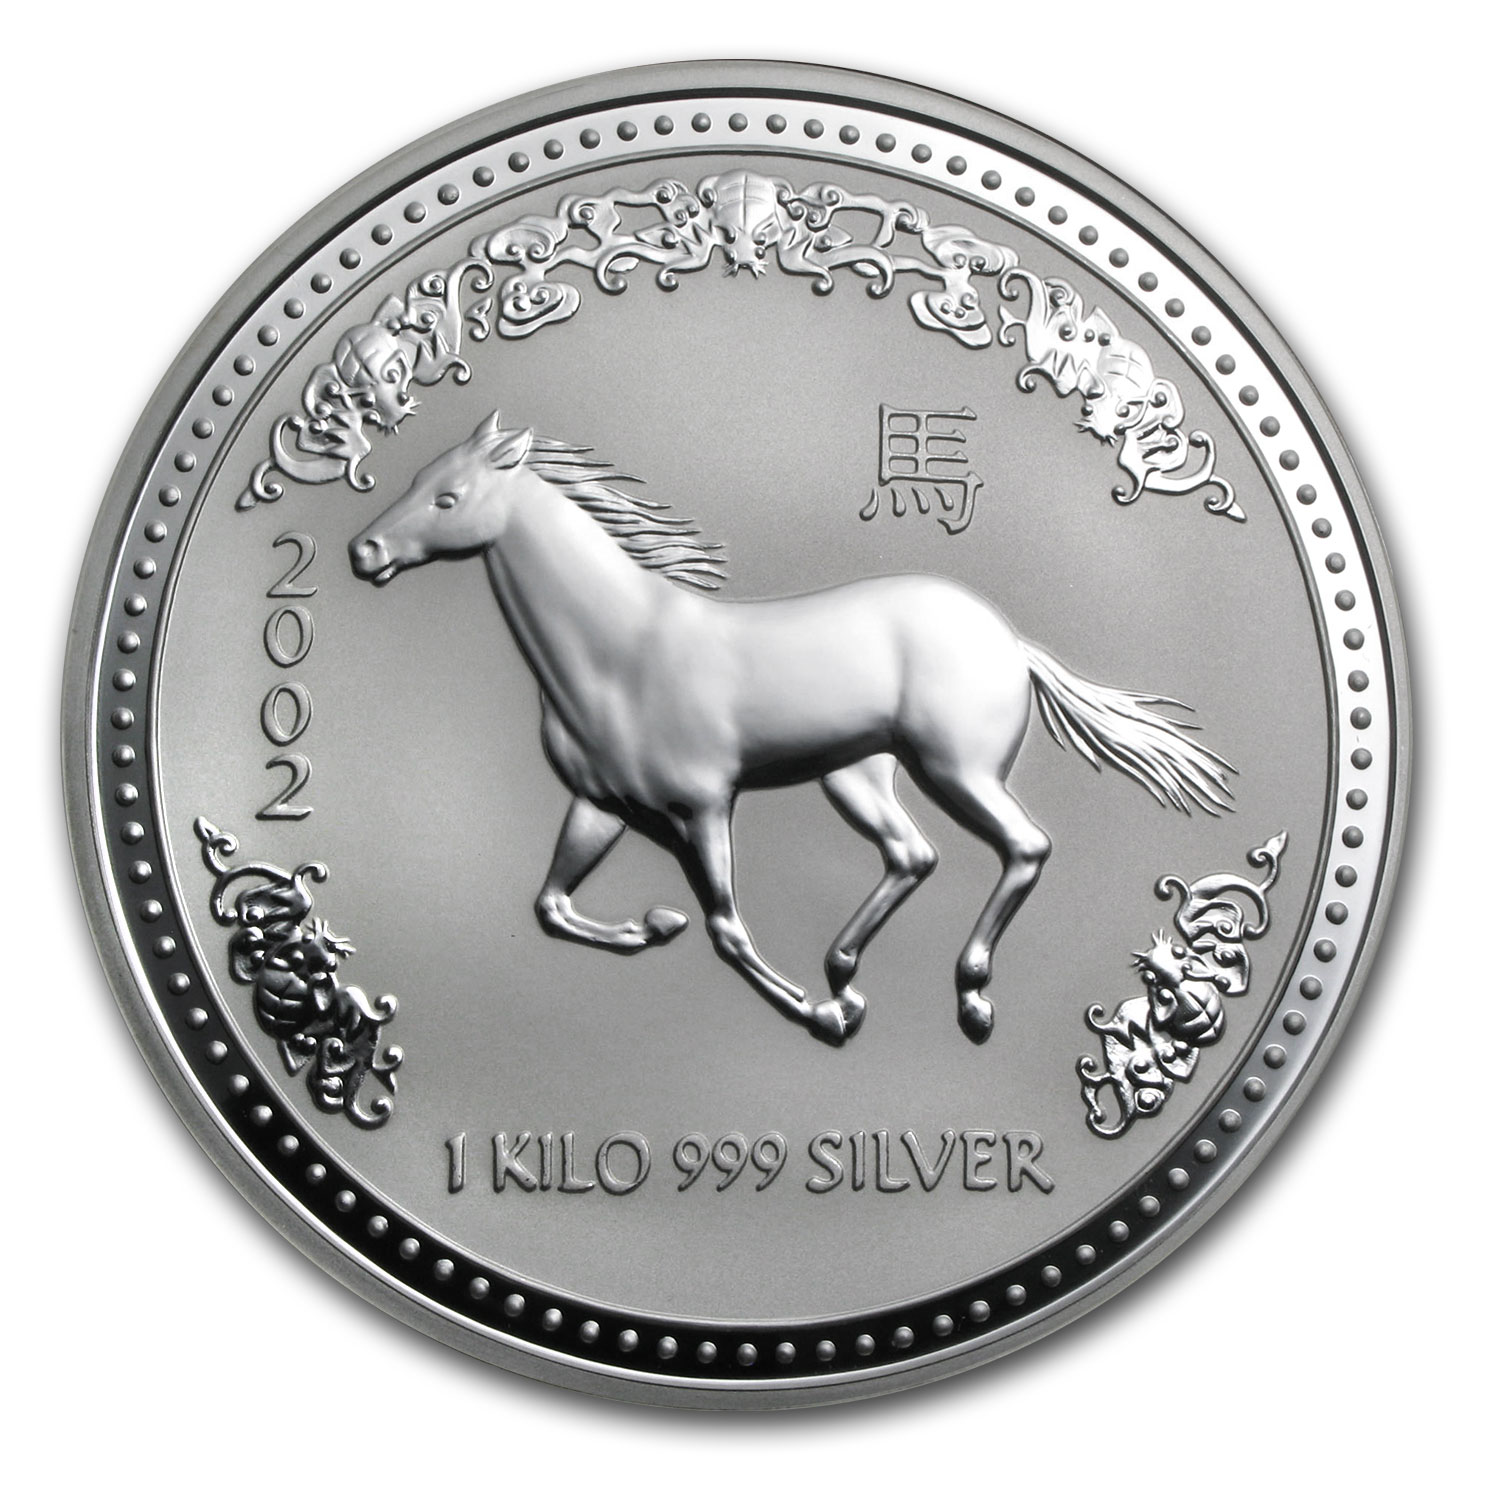 2002 Australia 1 kilo Silver Year of the Horse BU